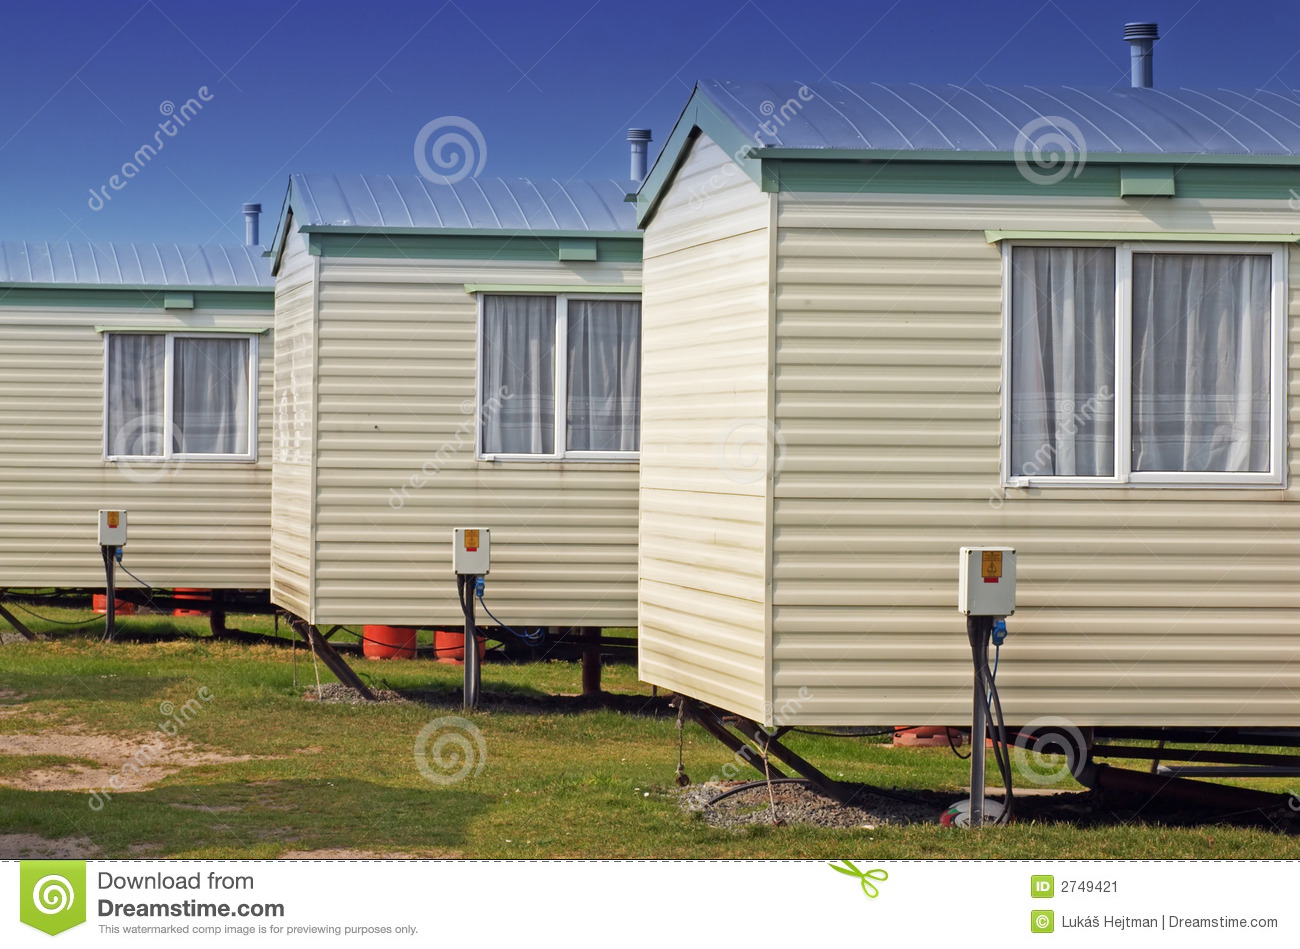 Trailer homes stock image  Image of stand, great, budget - 2749421